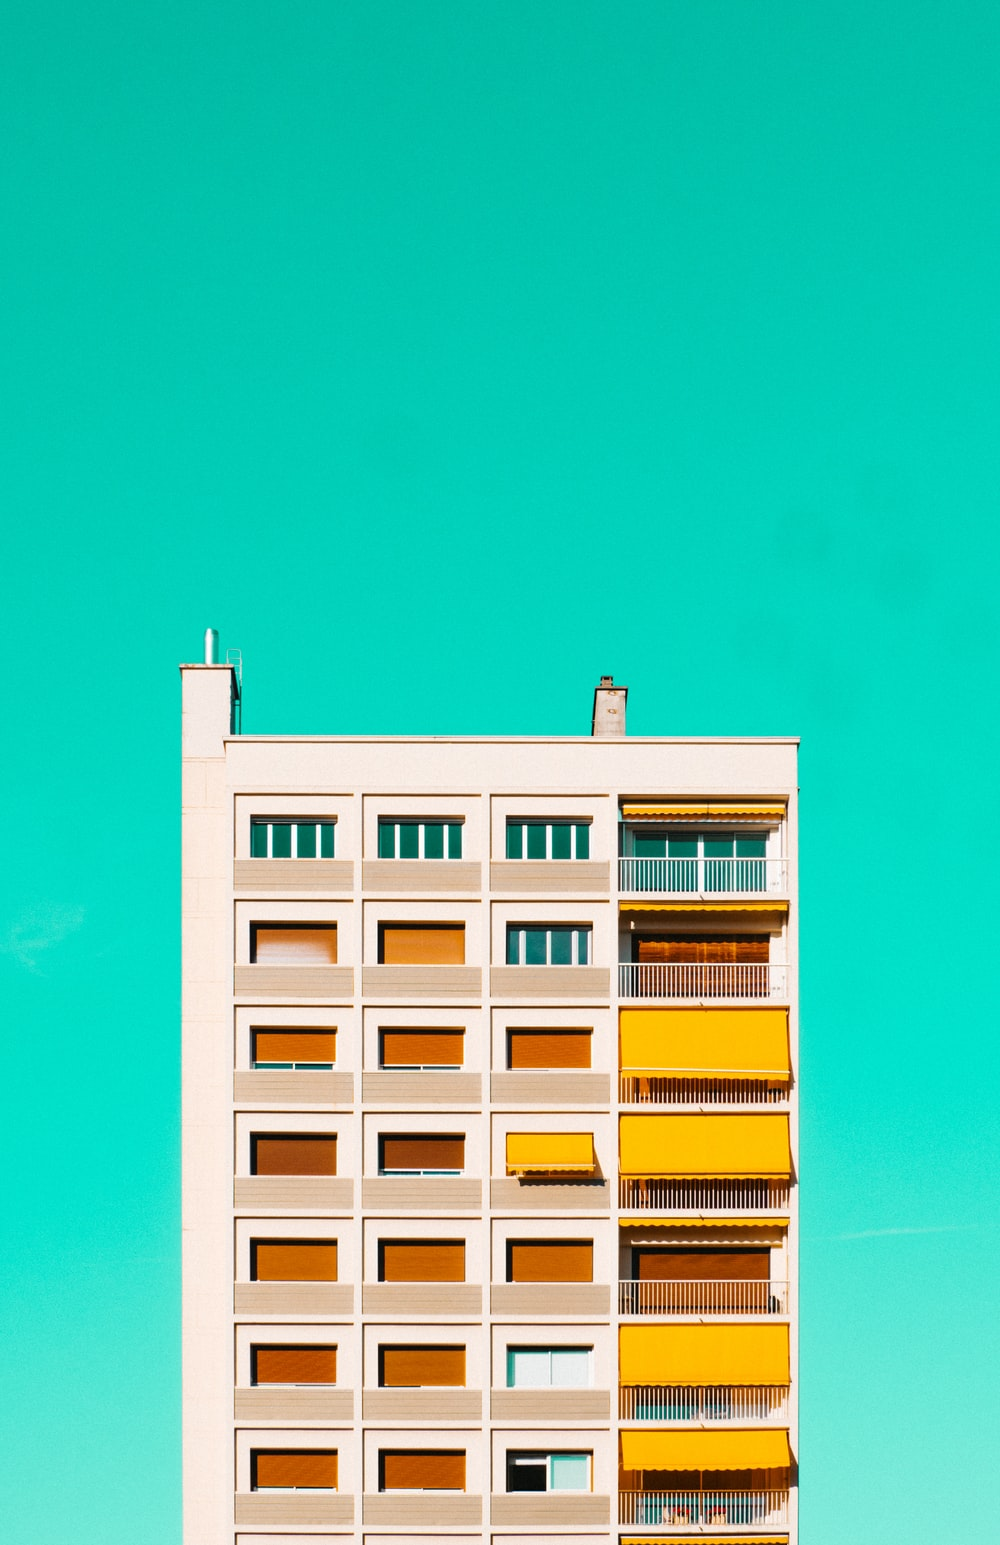 white and yellow concrete building under blue sky during daytime